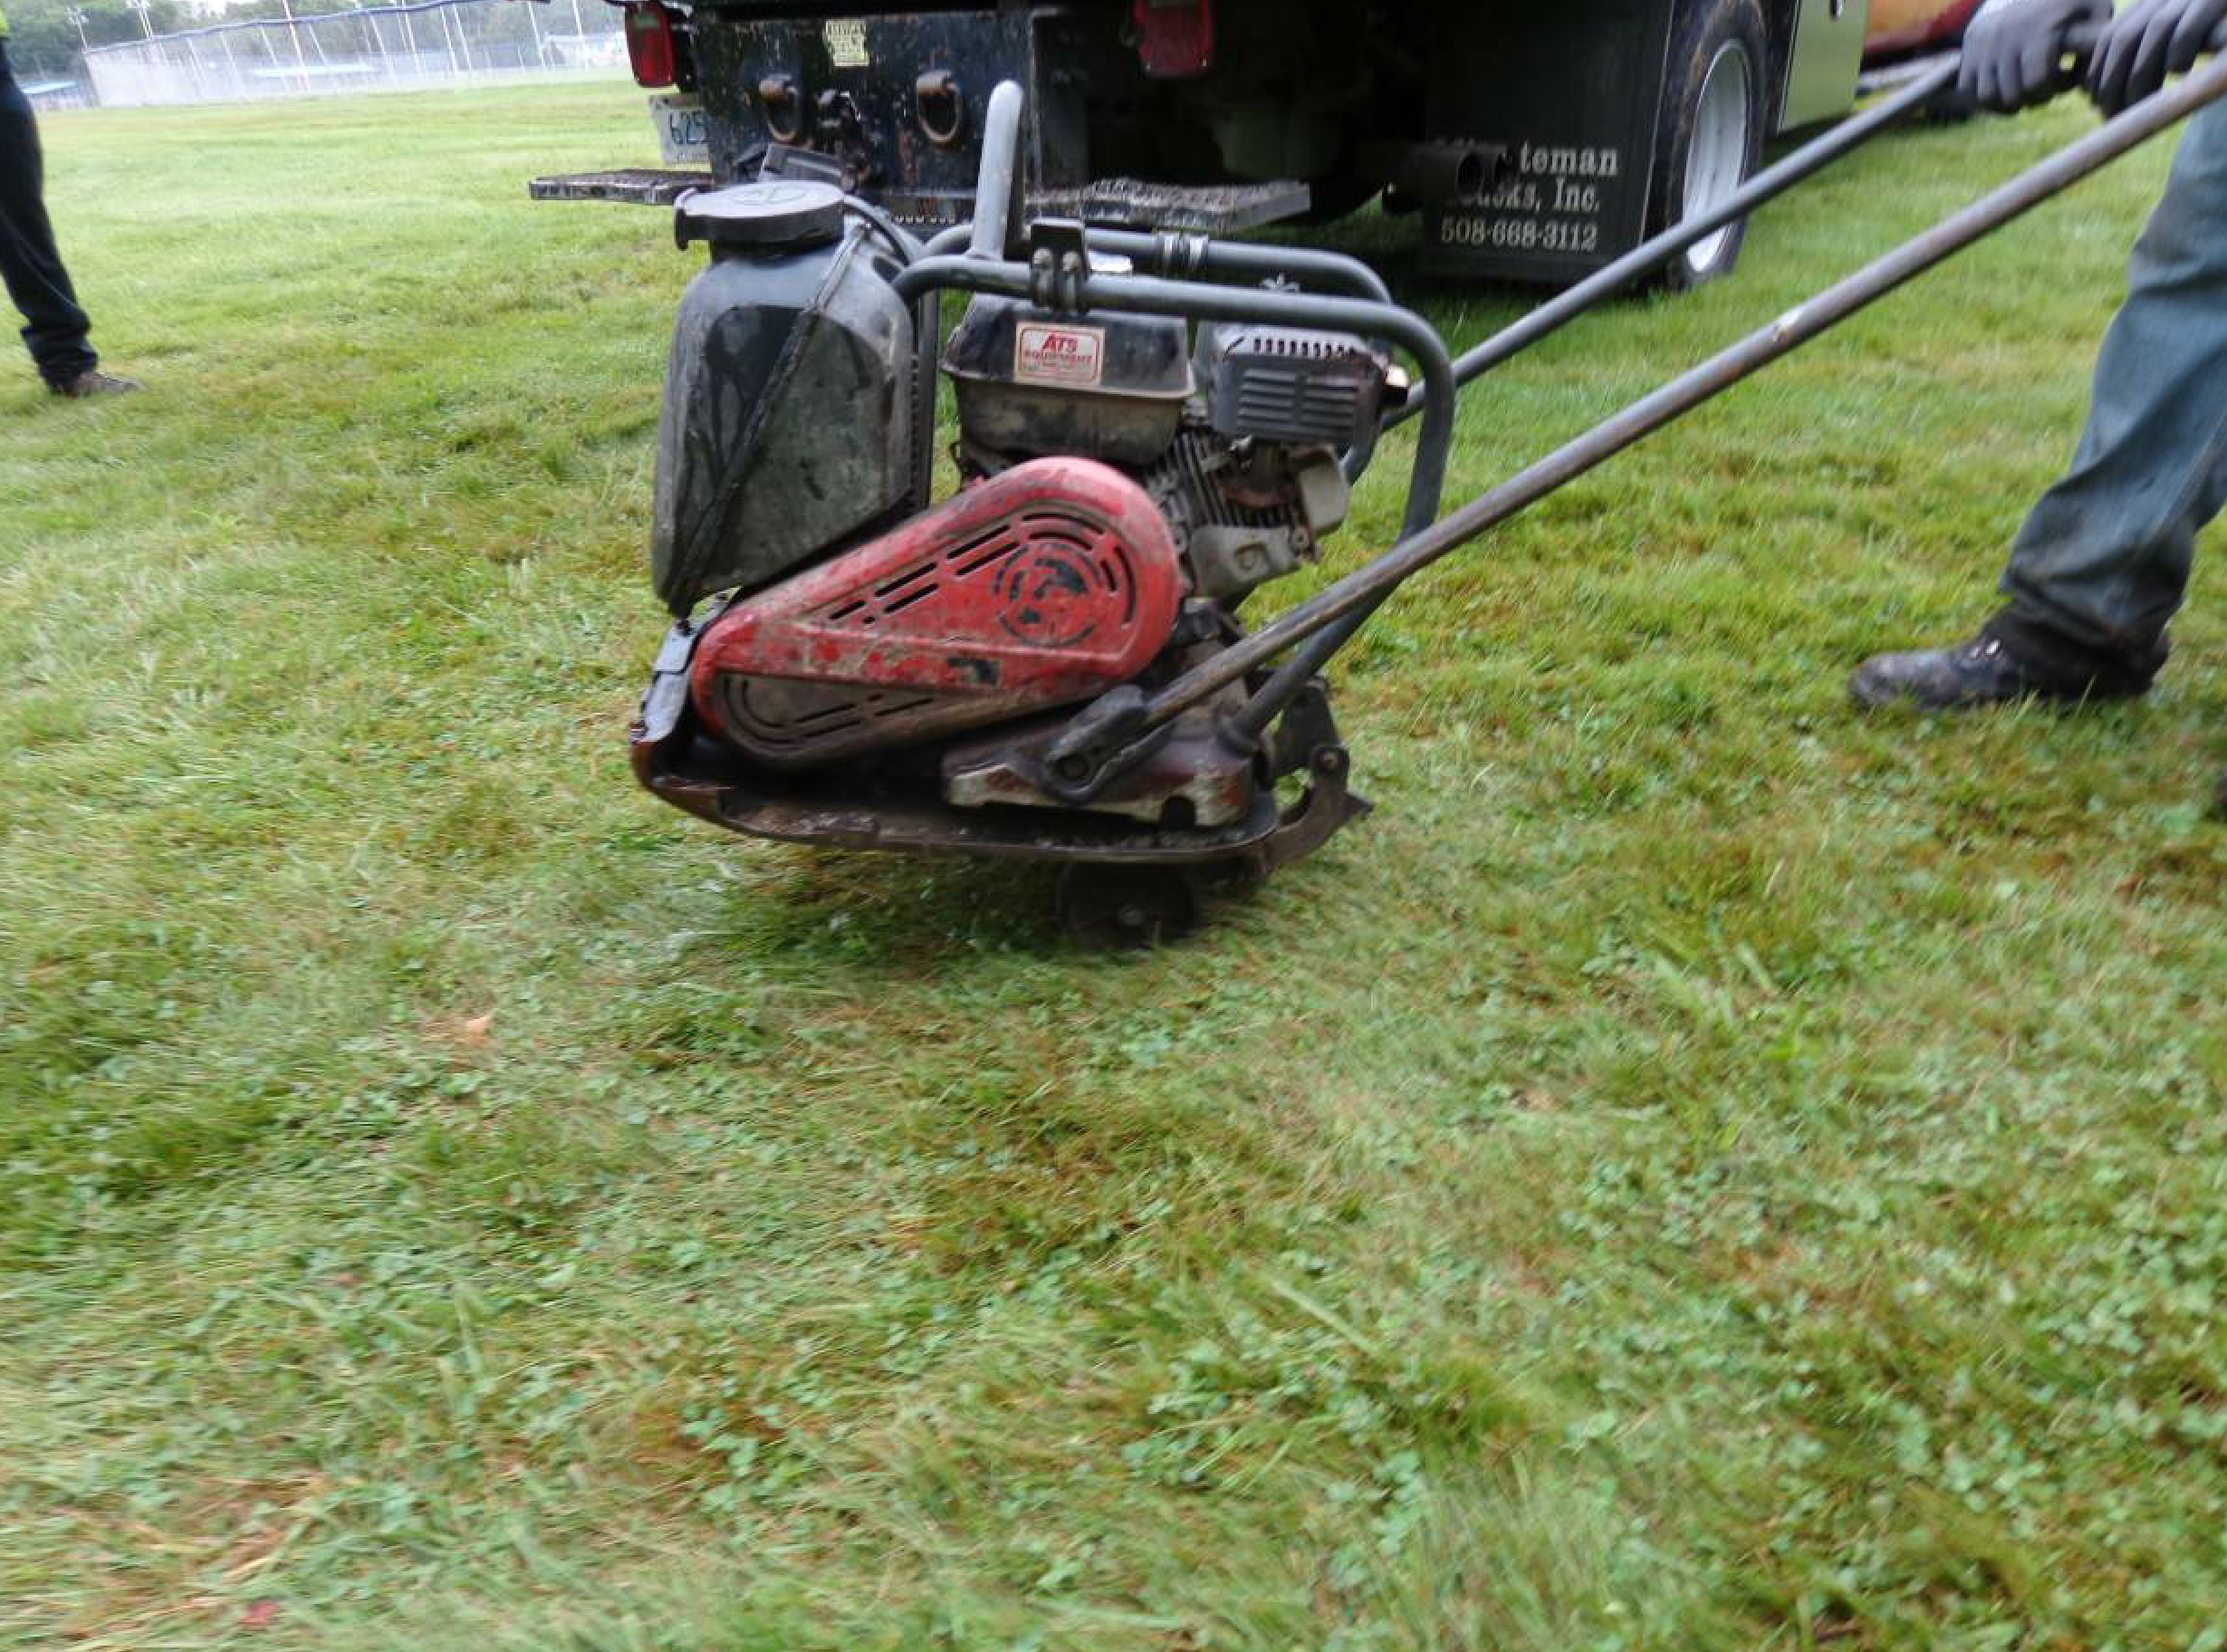 When the laborer is finished compacting an area, he can lower the wheels using the hinge to swing them down, under the plate. This makes rolling the plate compactor to another area of the work zone much easier.